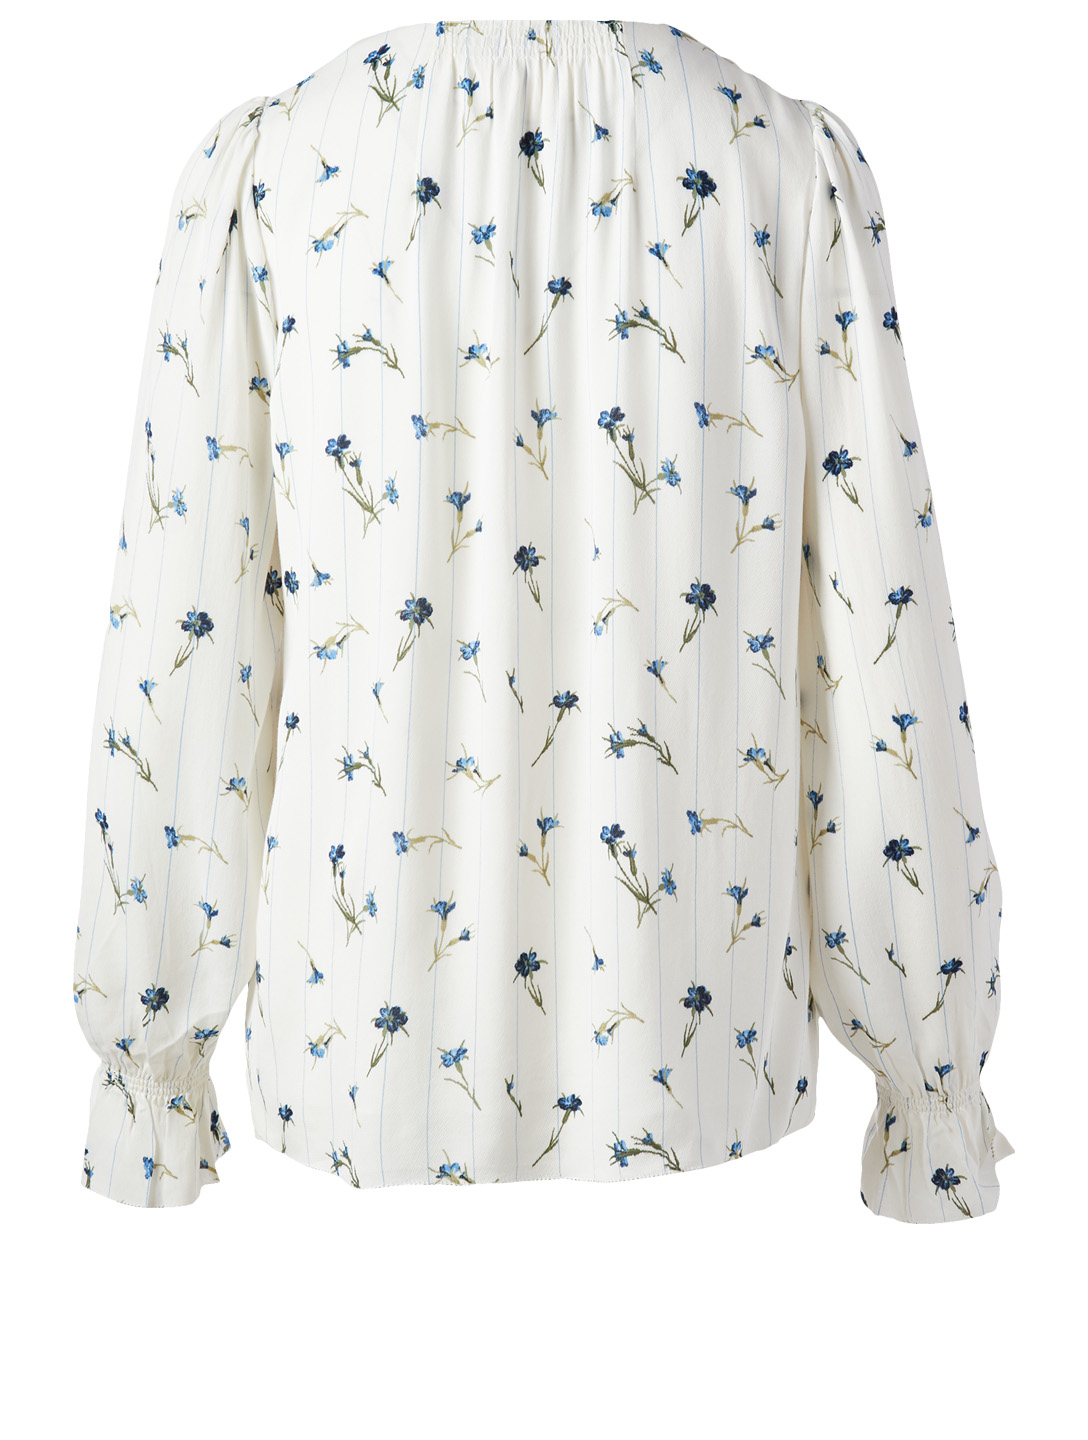 JOIE Bolona C Blouse In Floral Print Women's White